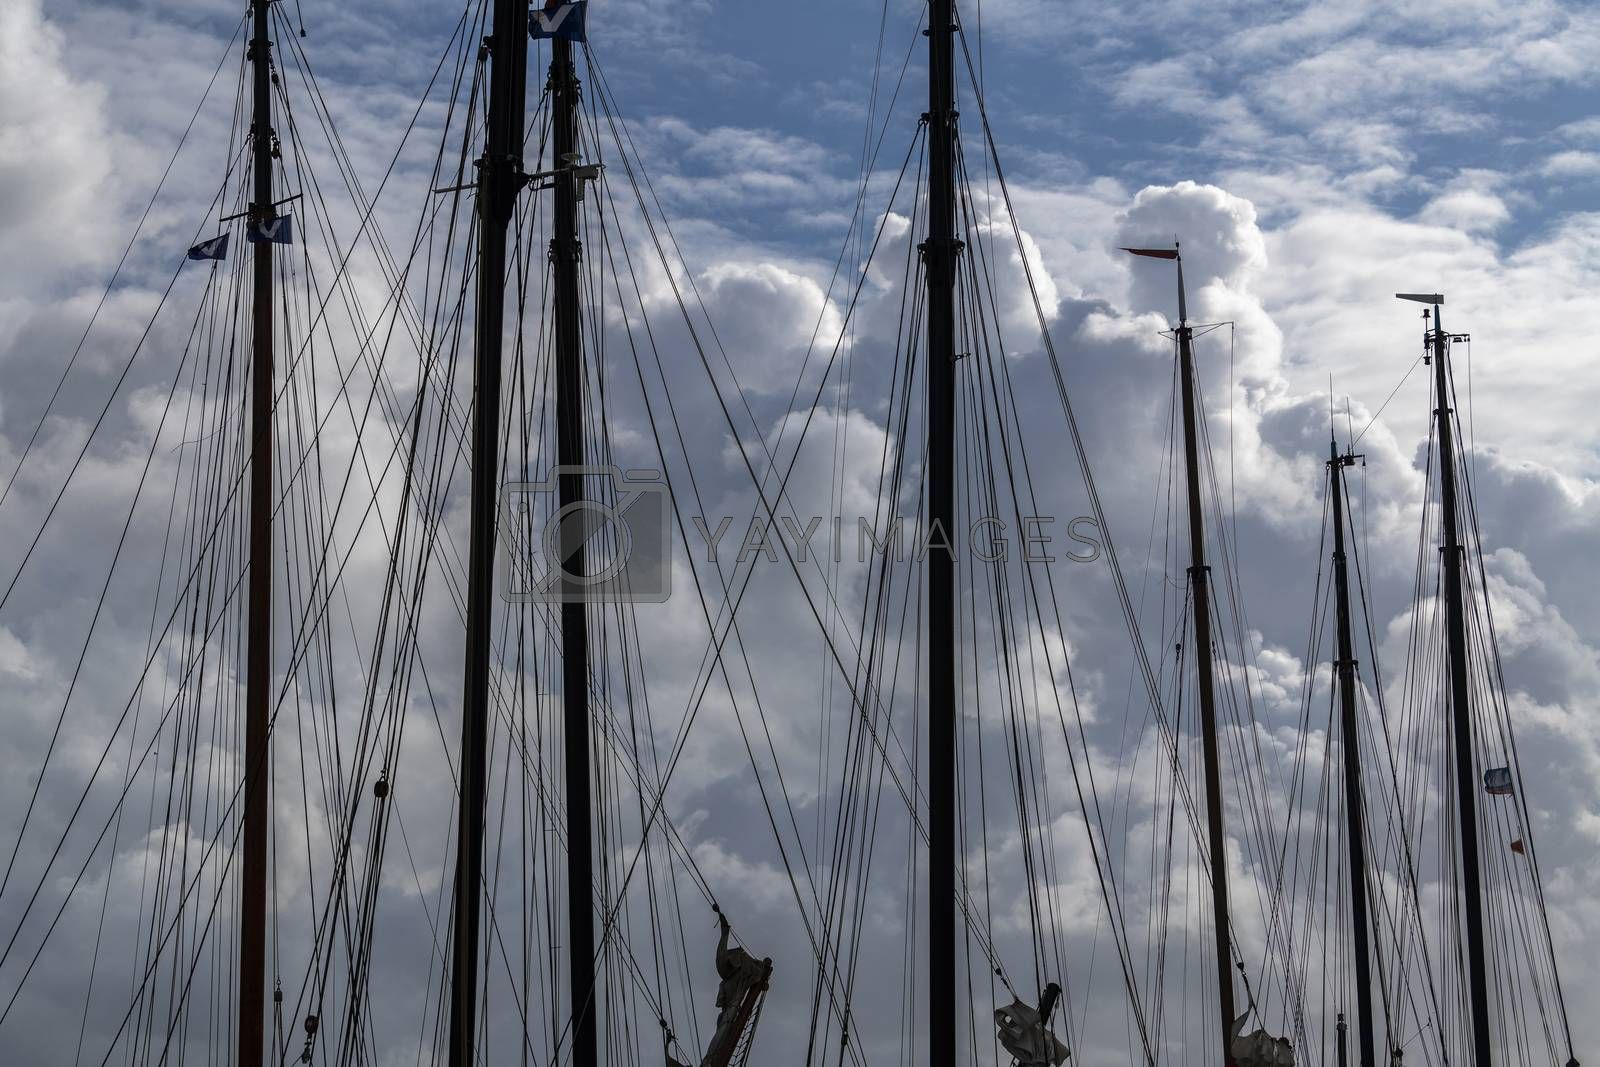 Masts in a harbor with impressive cloudy skies in the background in the North of the Netherlands